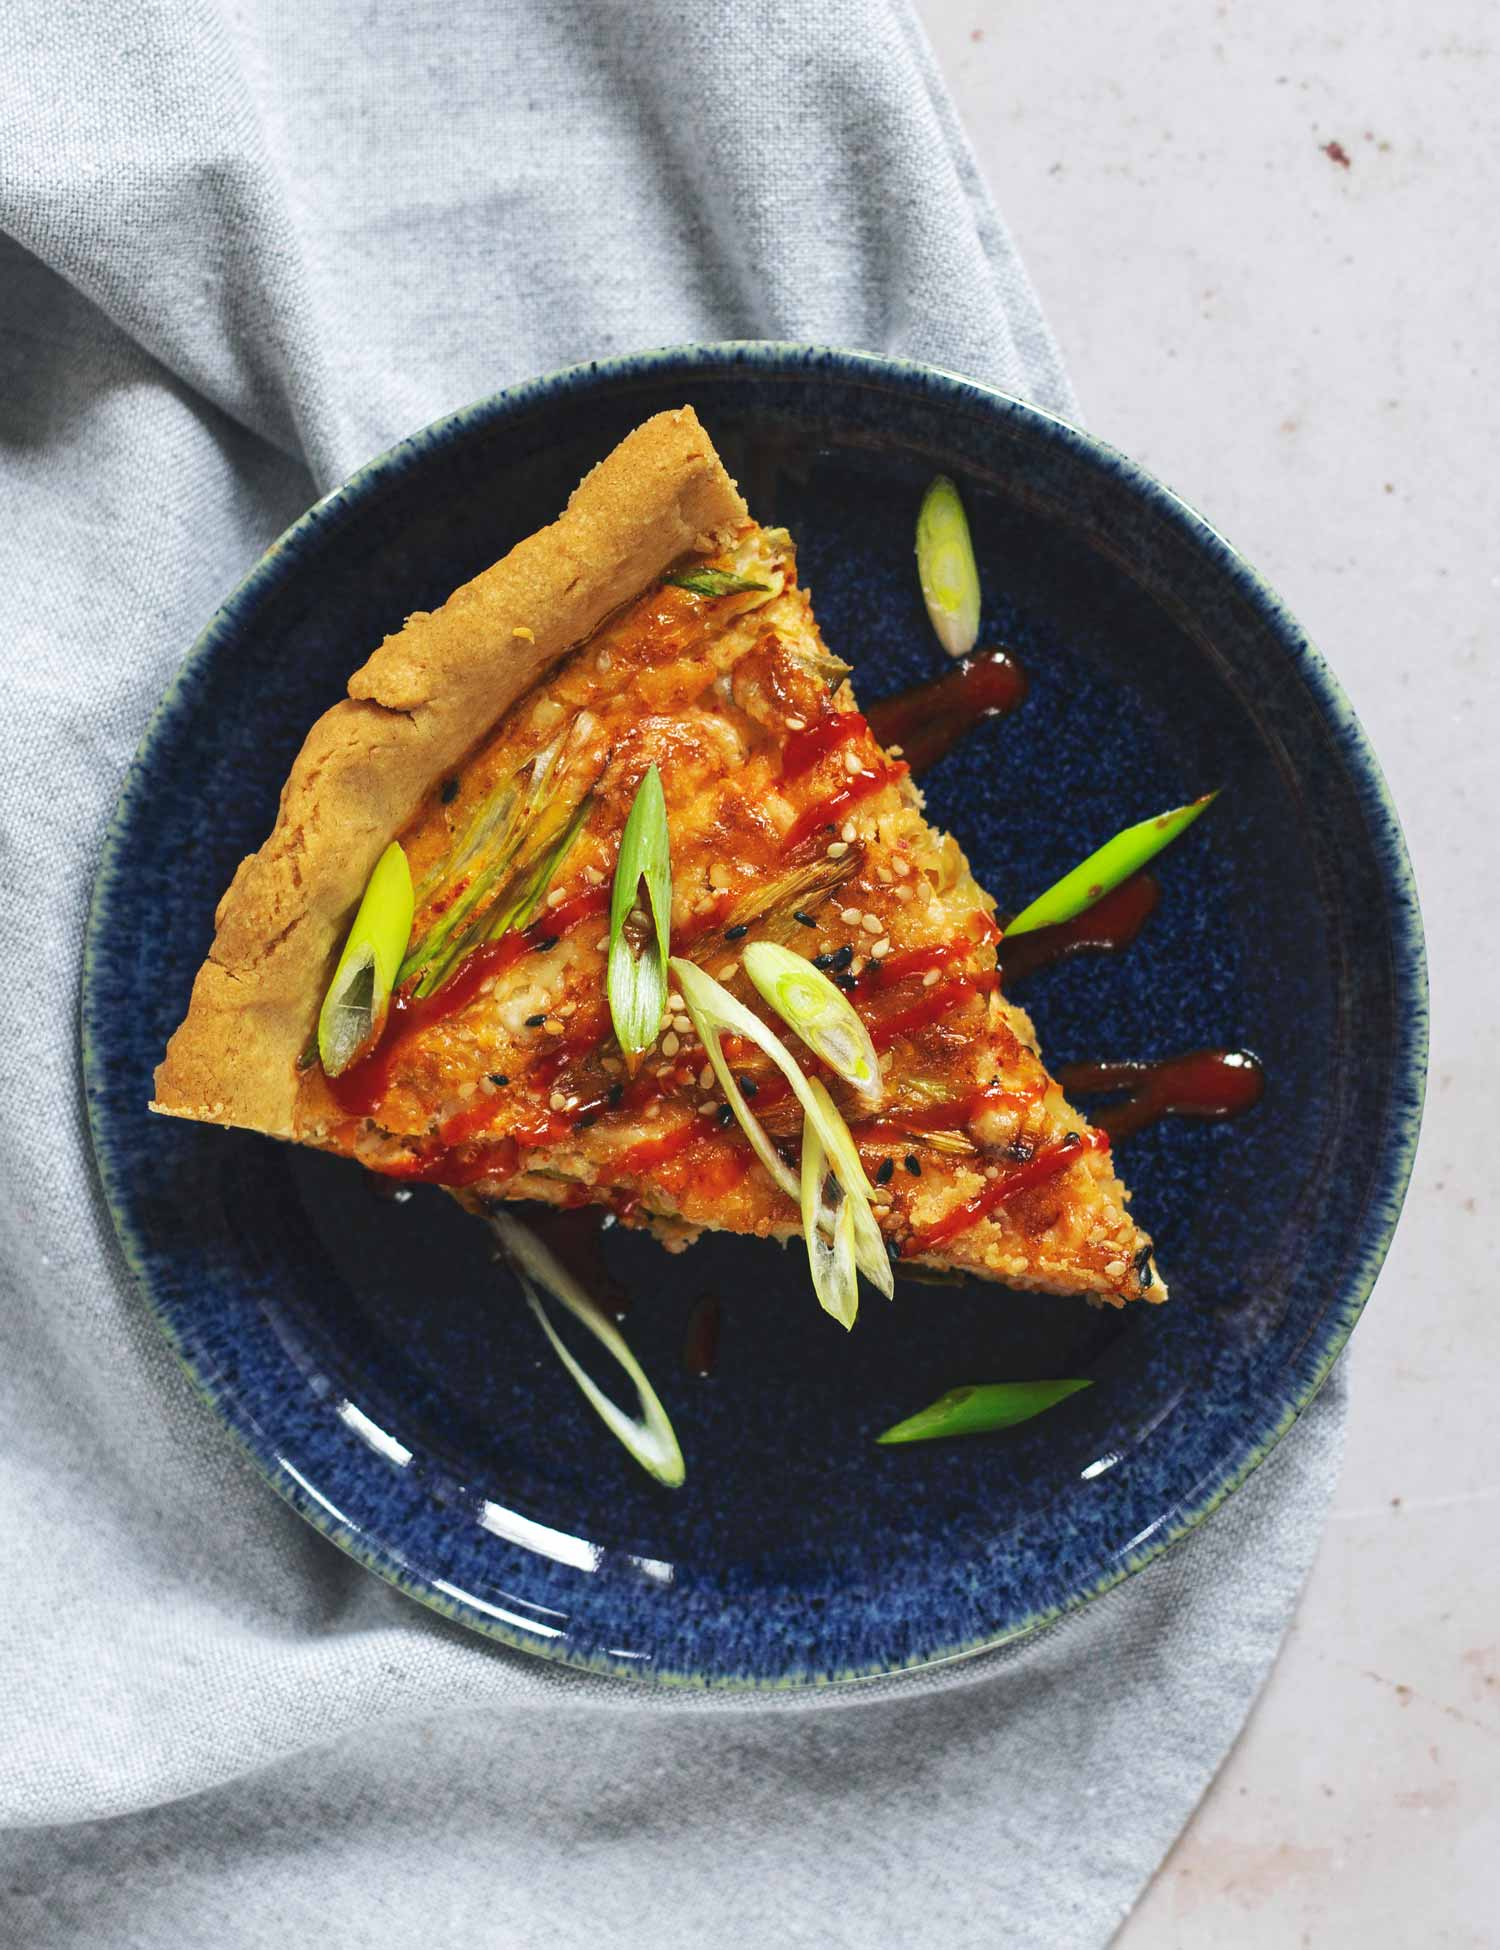 A slice of quiche with spring onion and red hot sauce on top